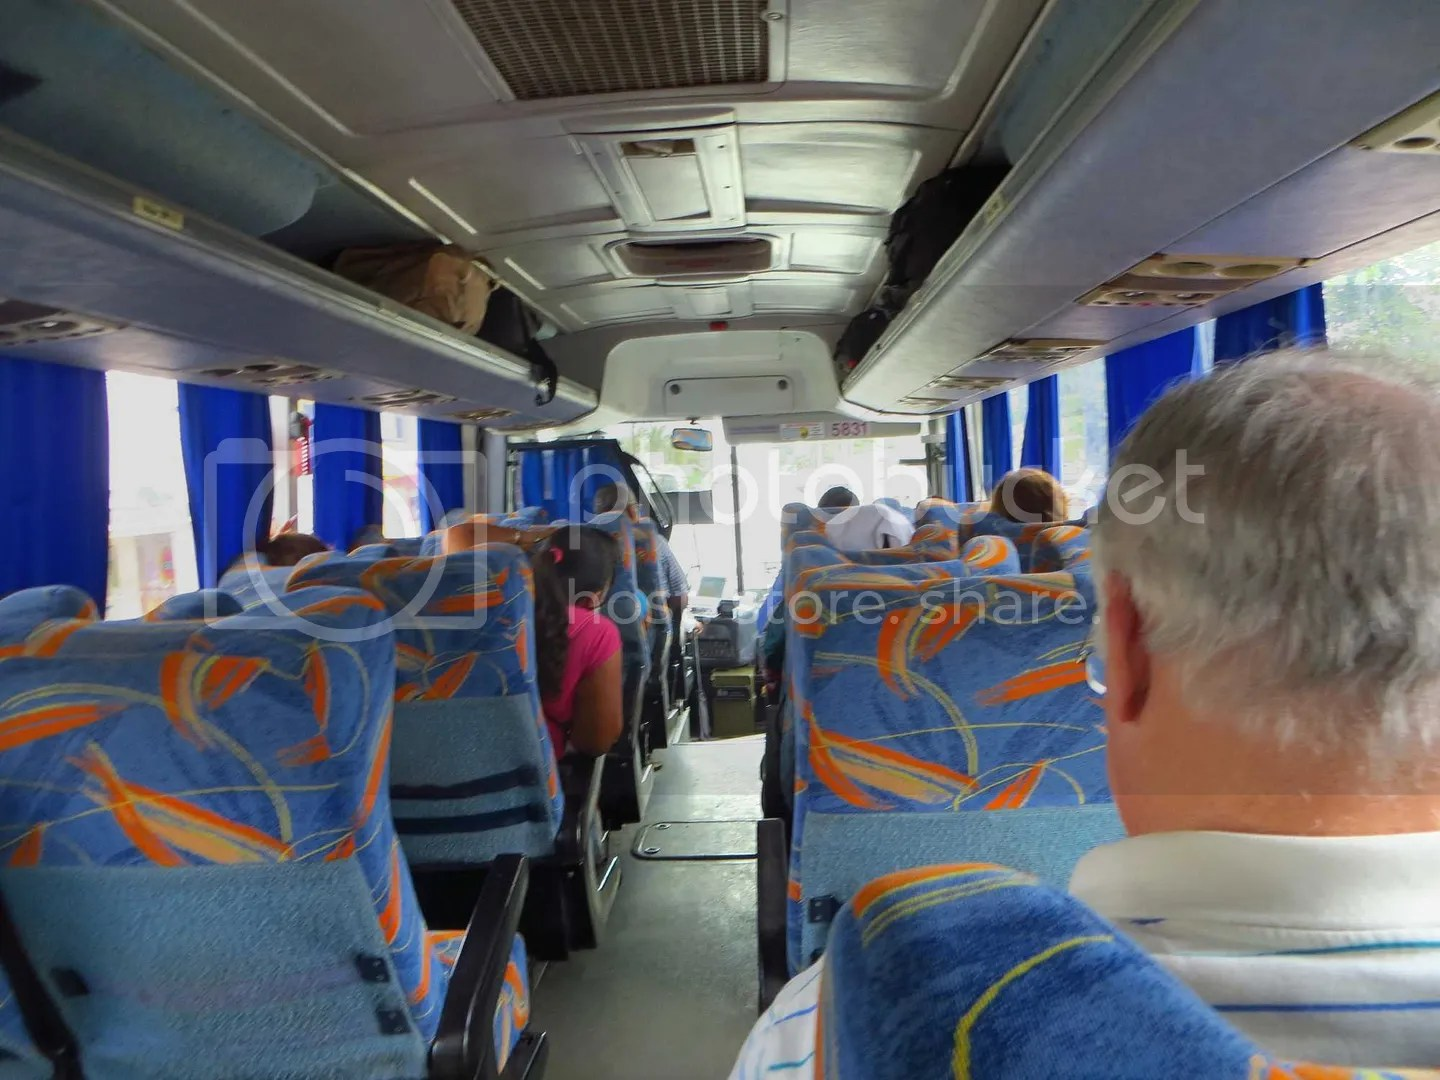 Inside of Seoncd class bus